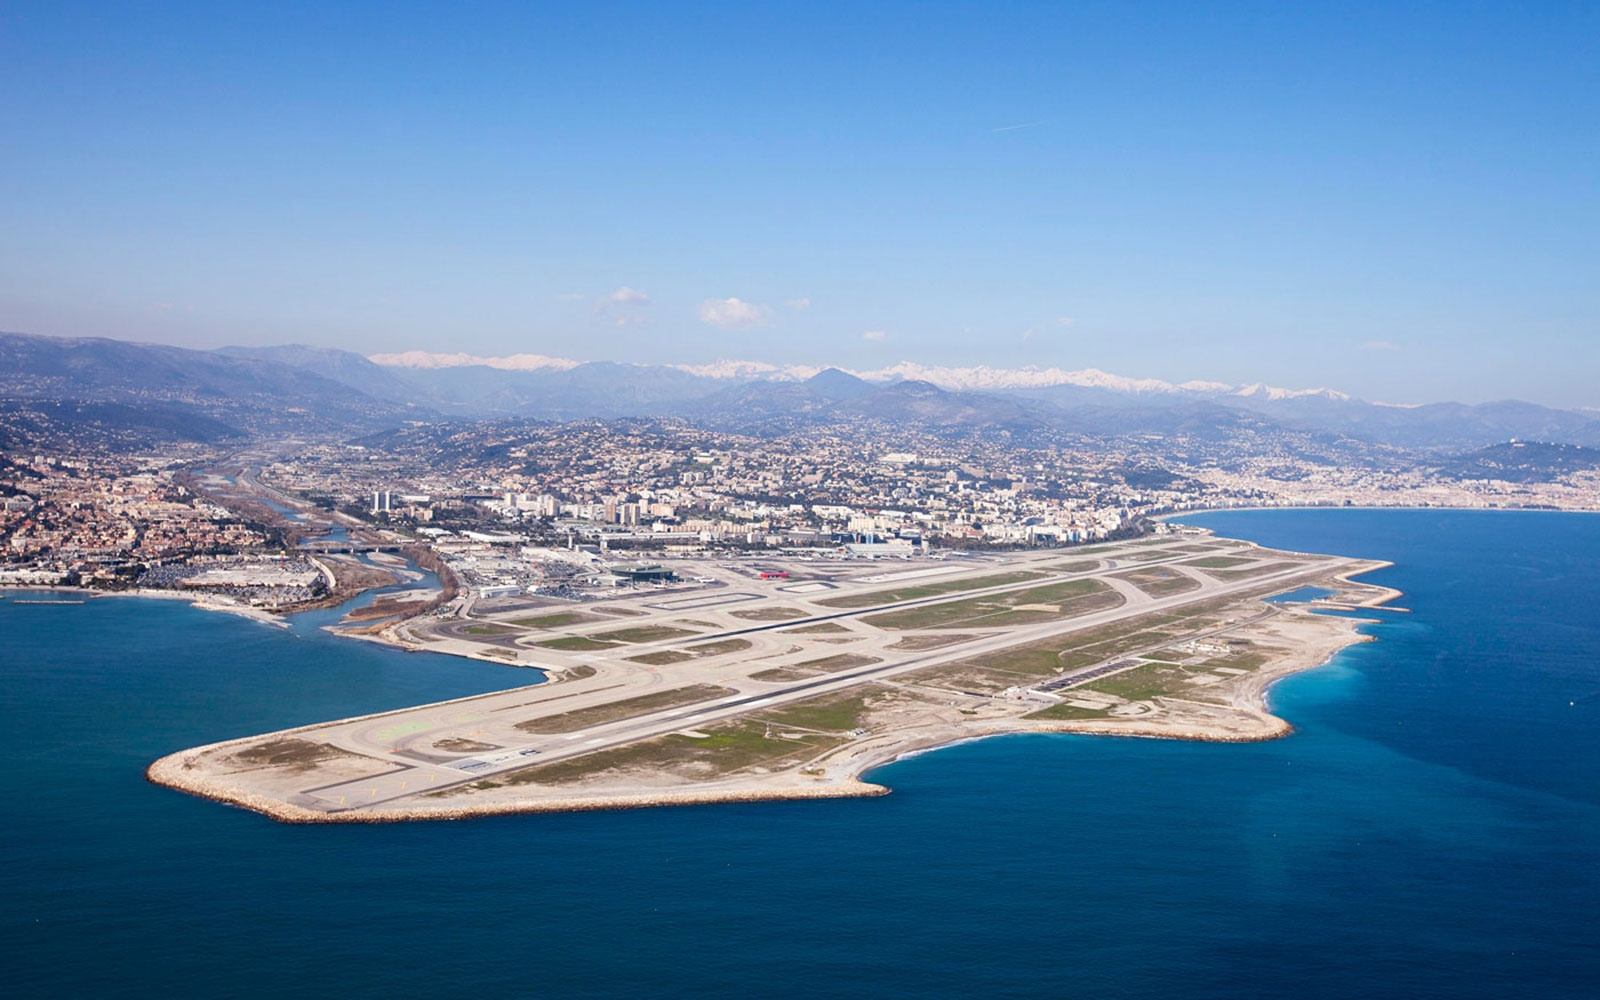 3. Nice Côte d'Azur International Airport in France